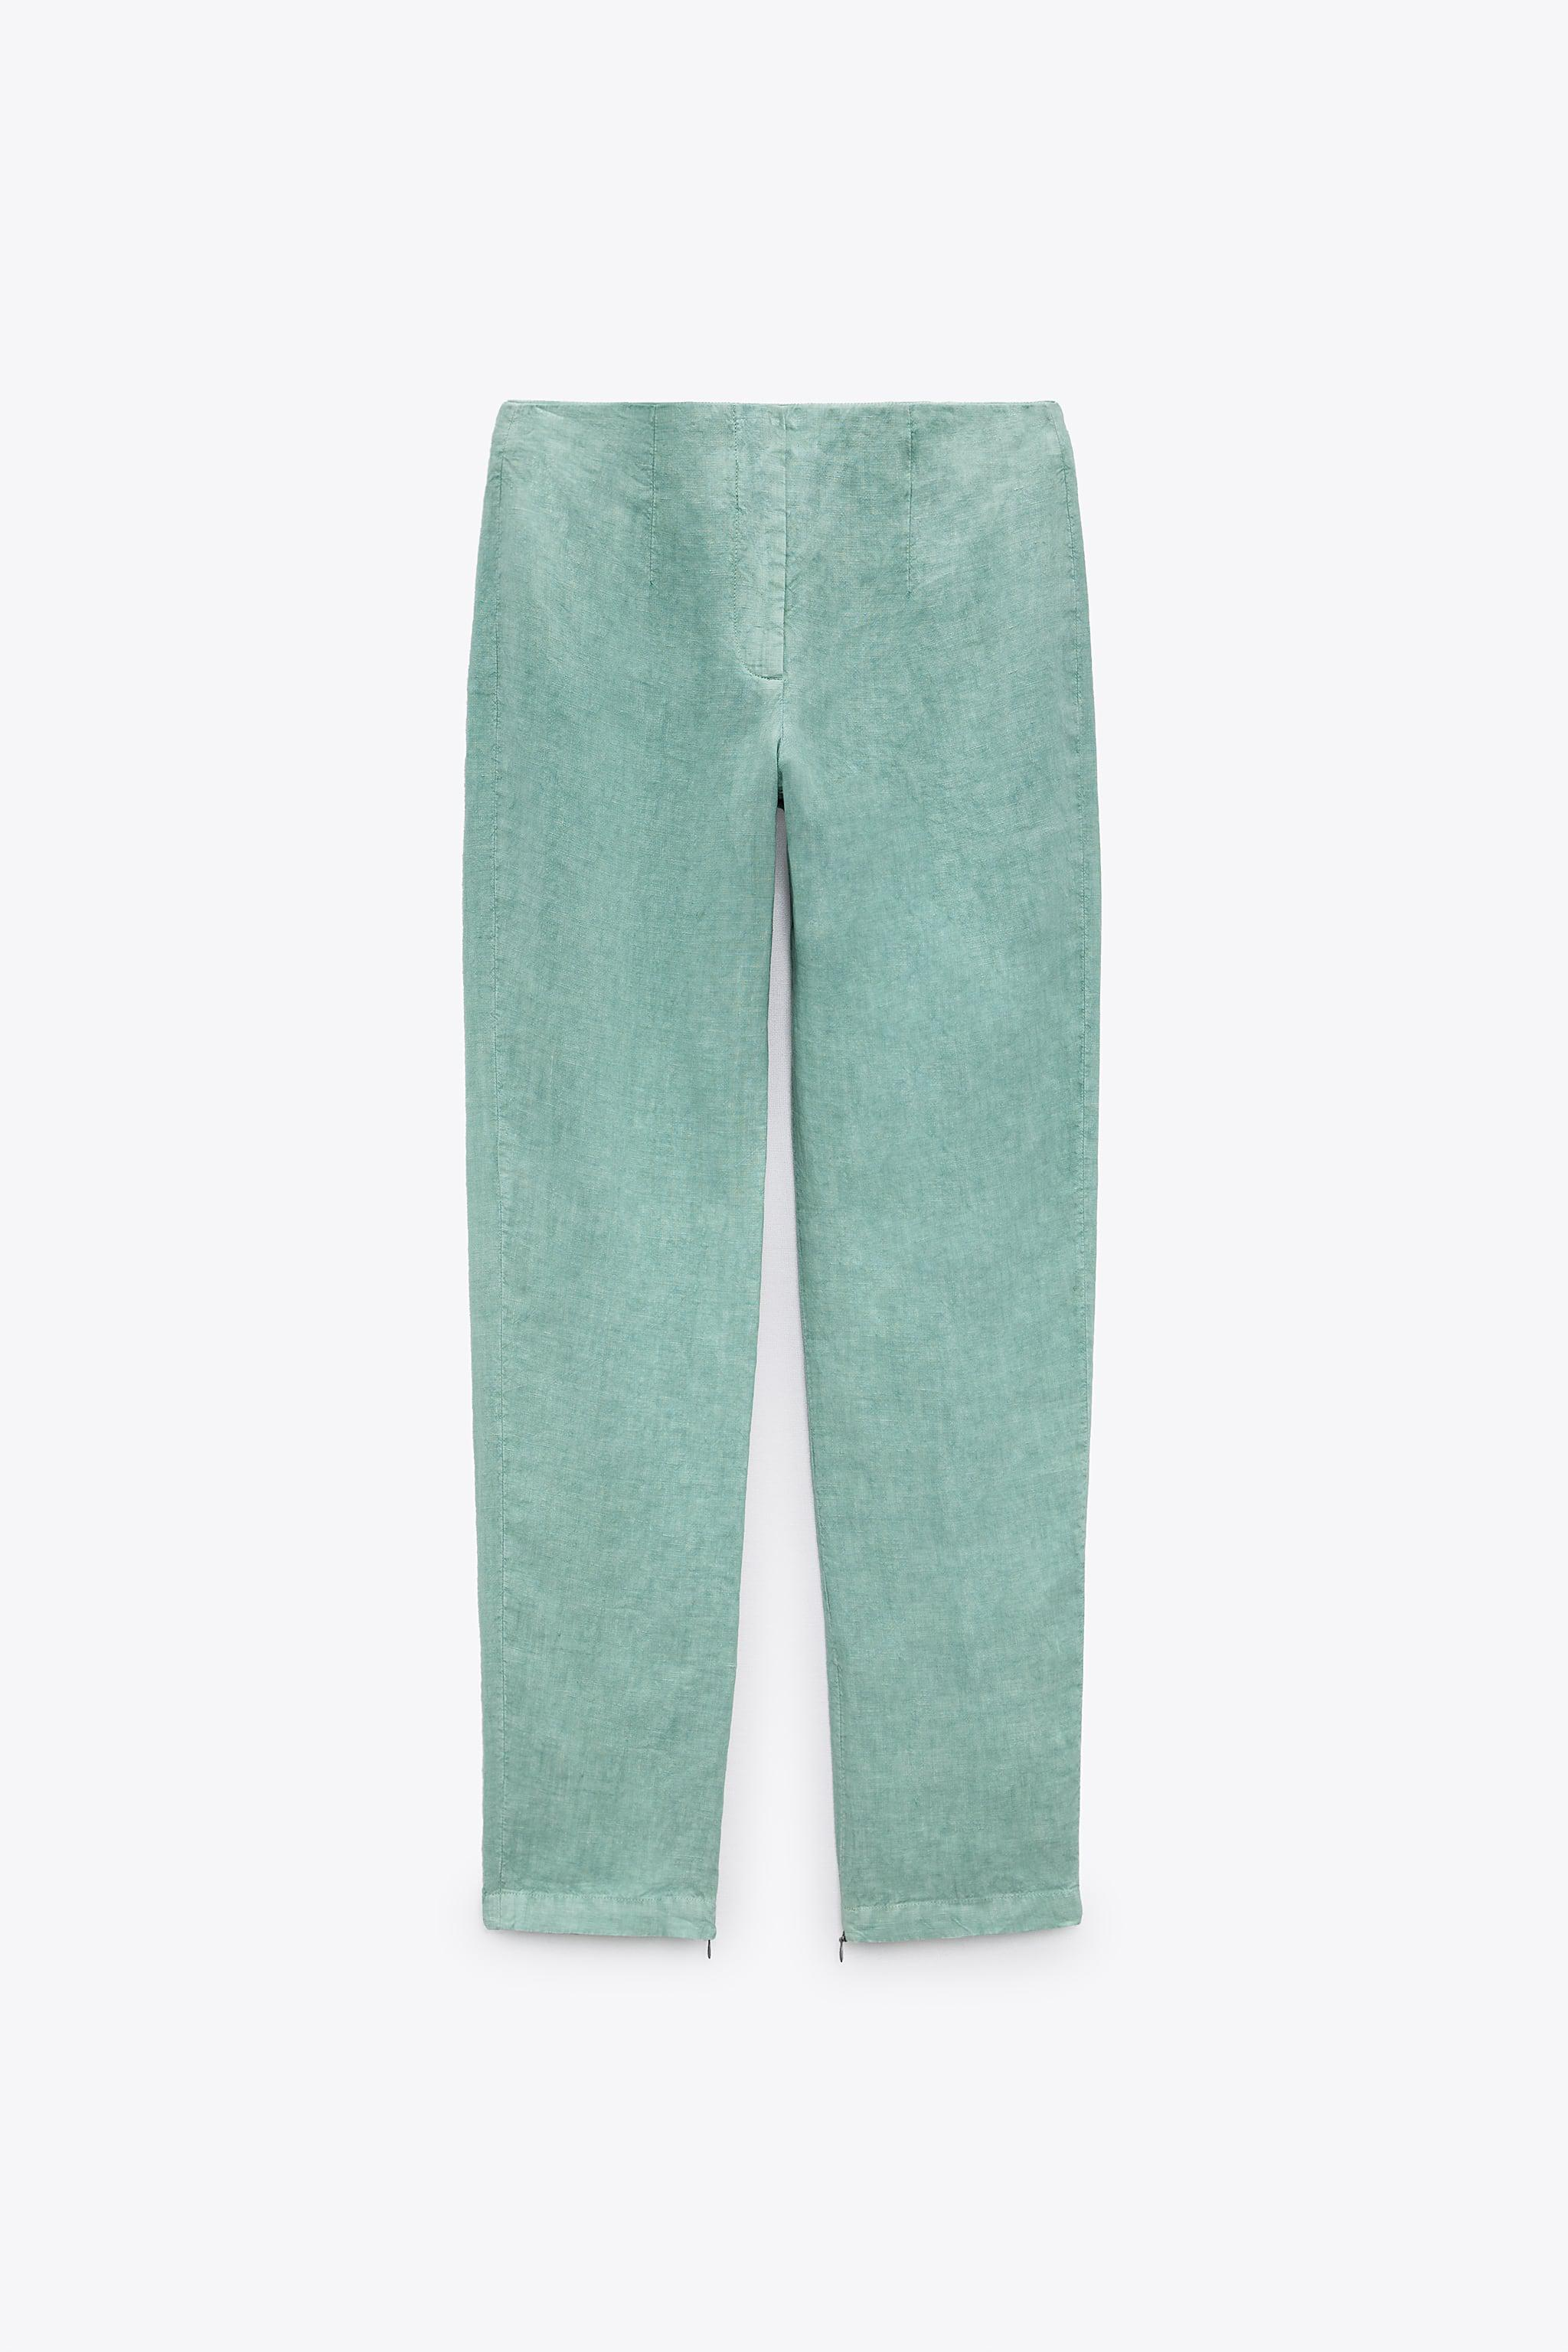 LIMITED EDITION LINEN PANTS WITH SLITS